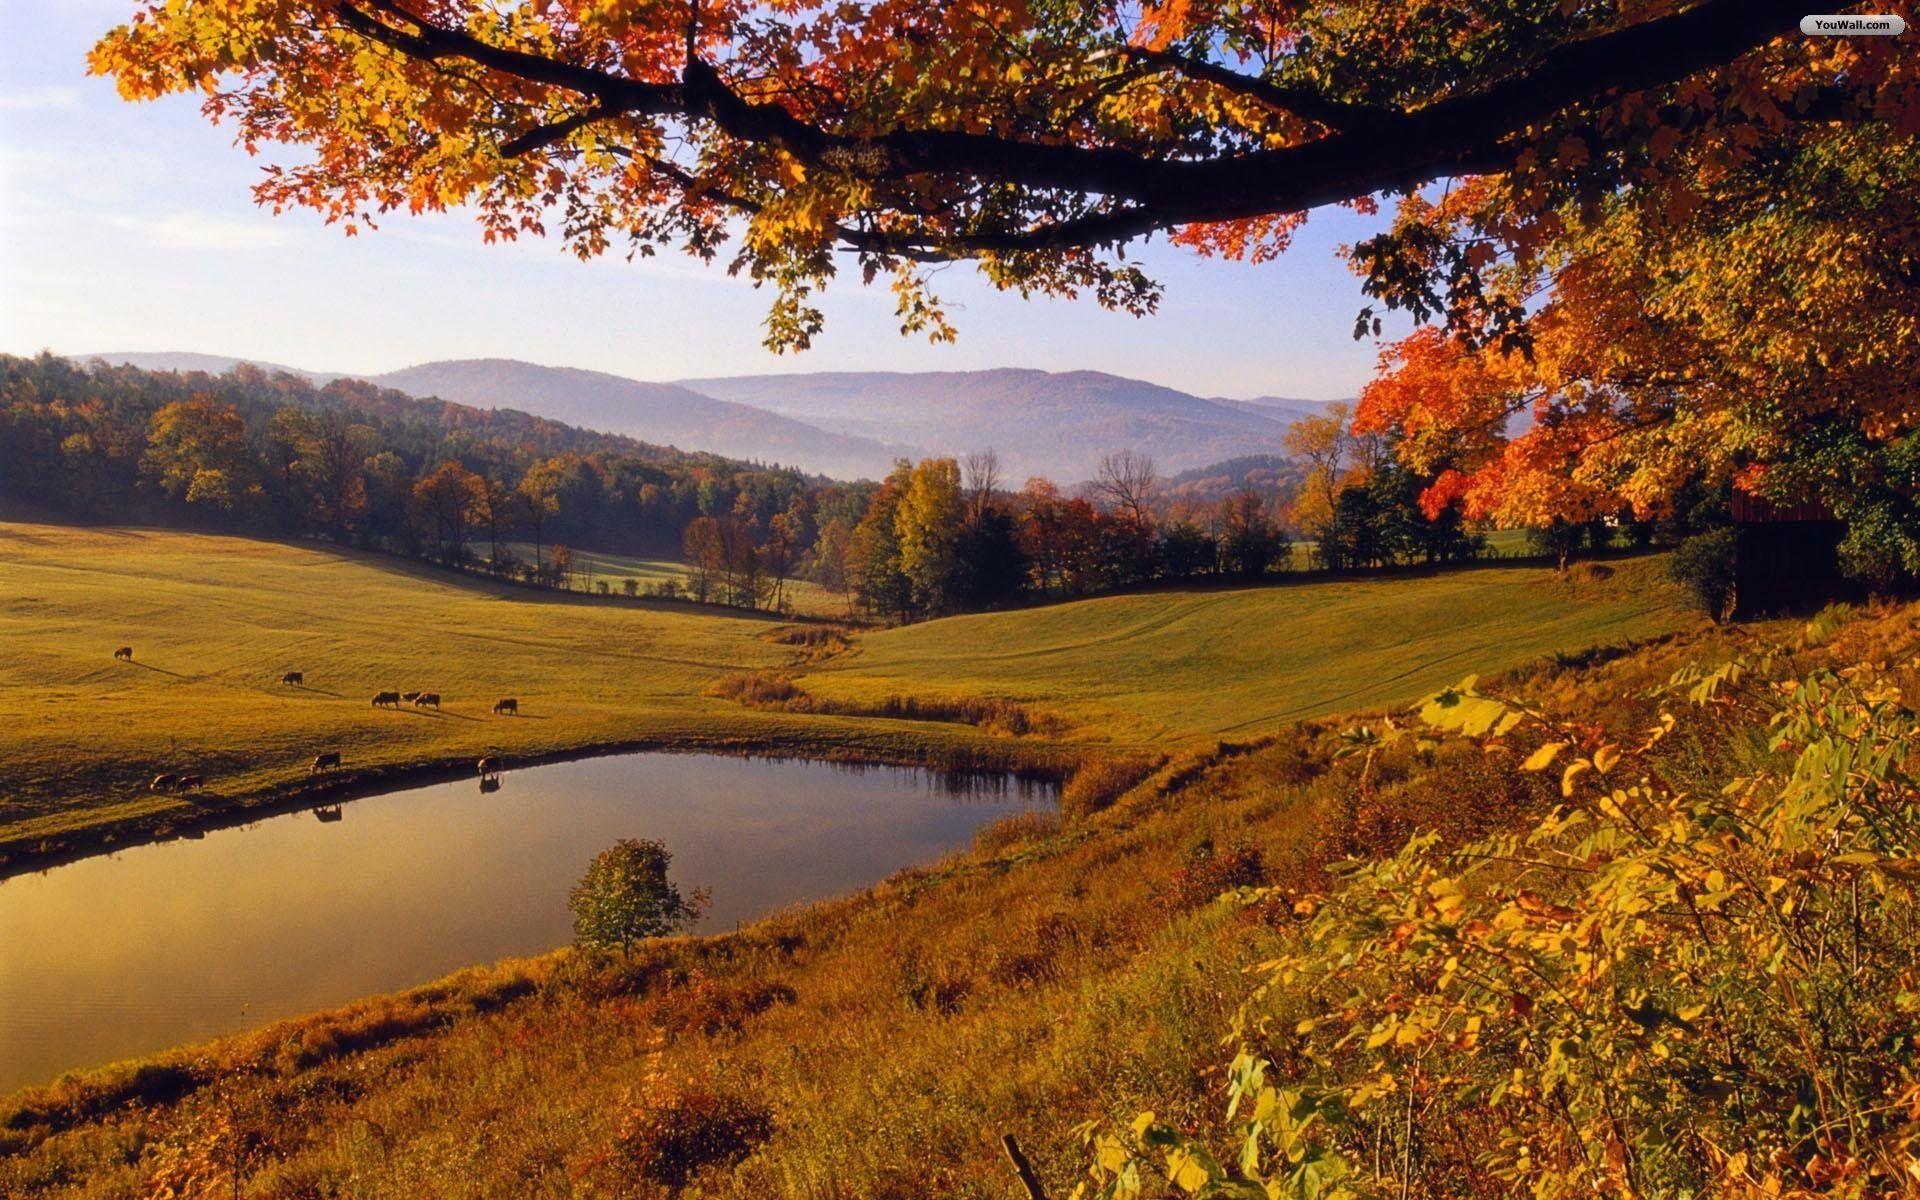 landscape autumn hd wallpaper - photo #5